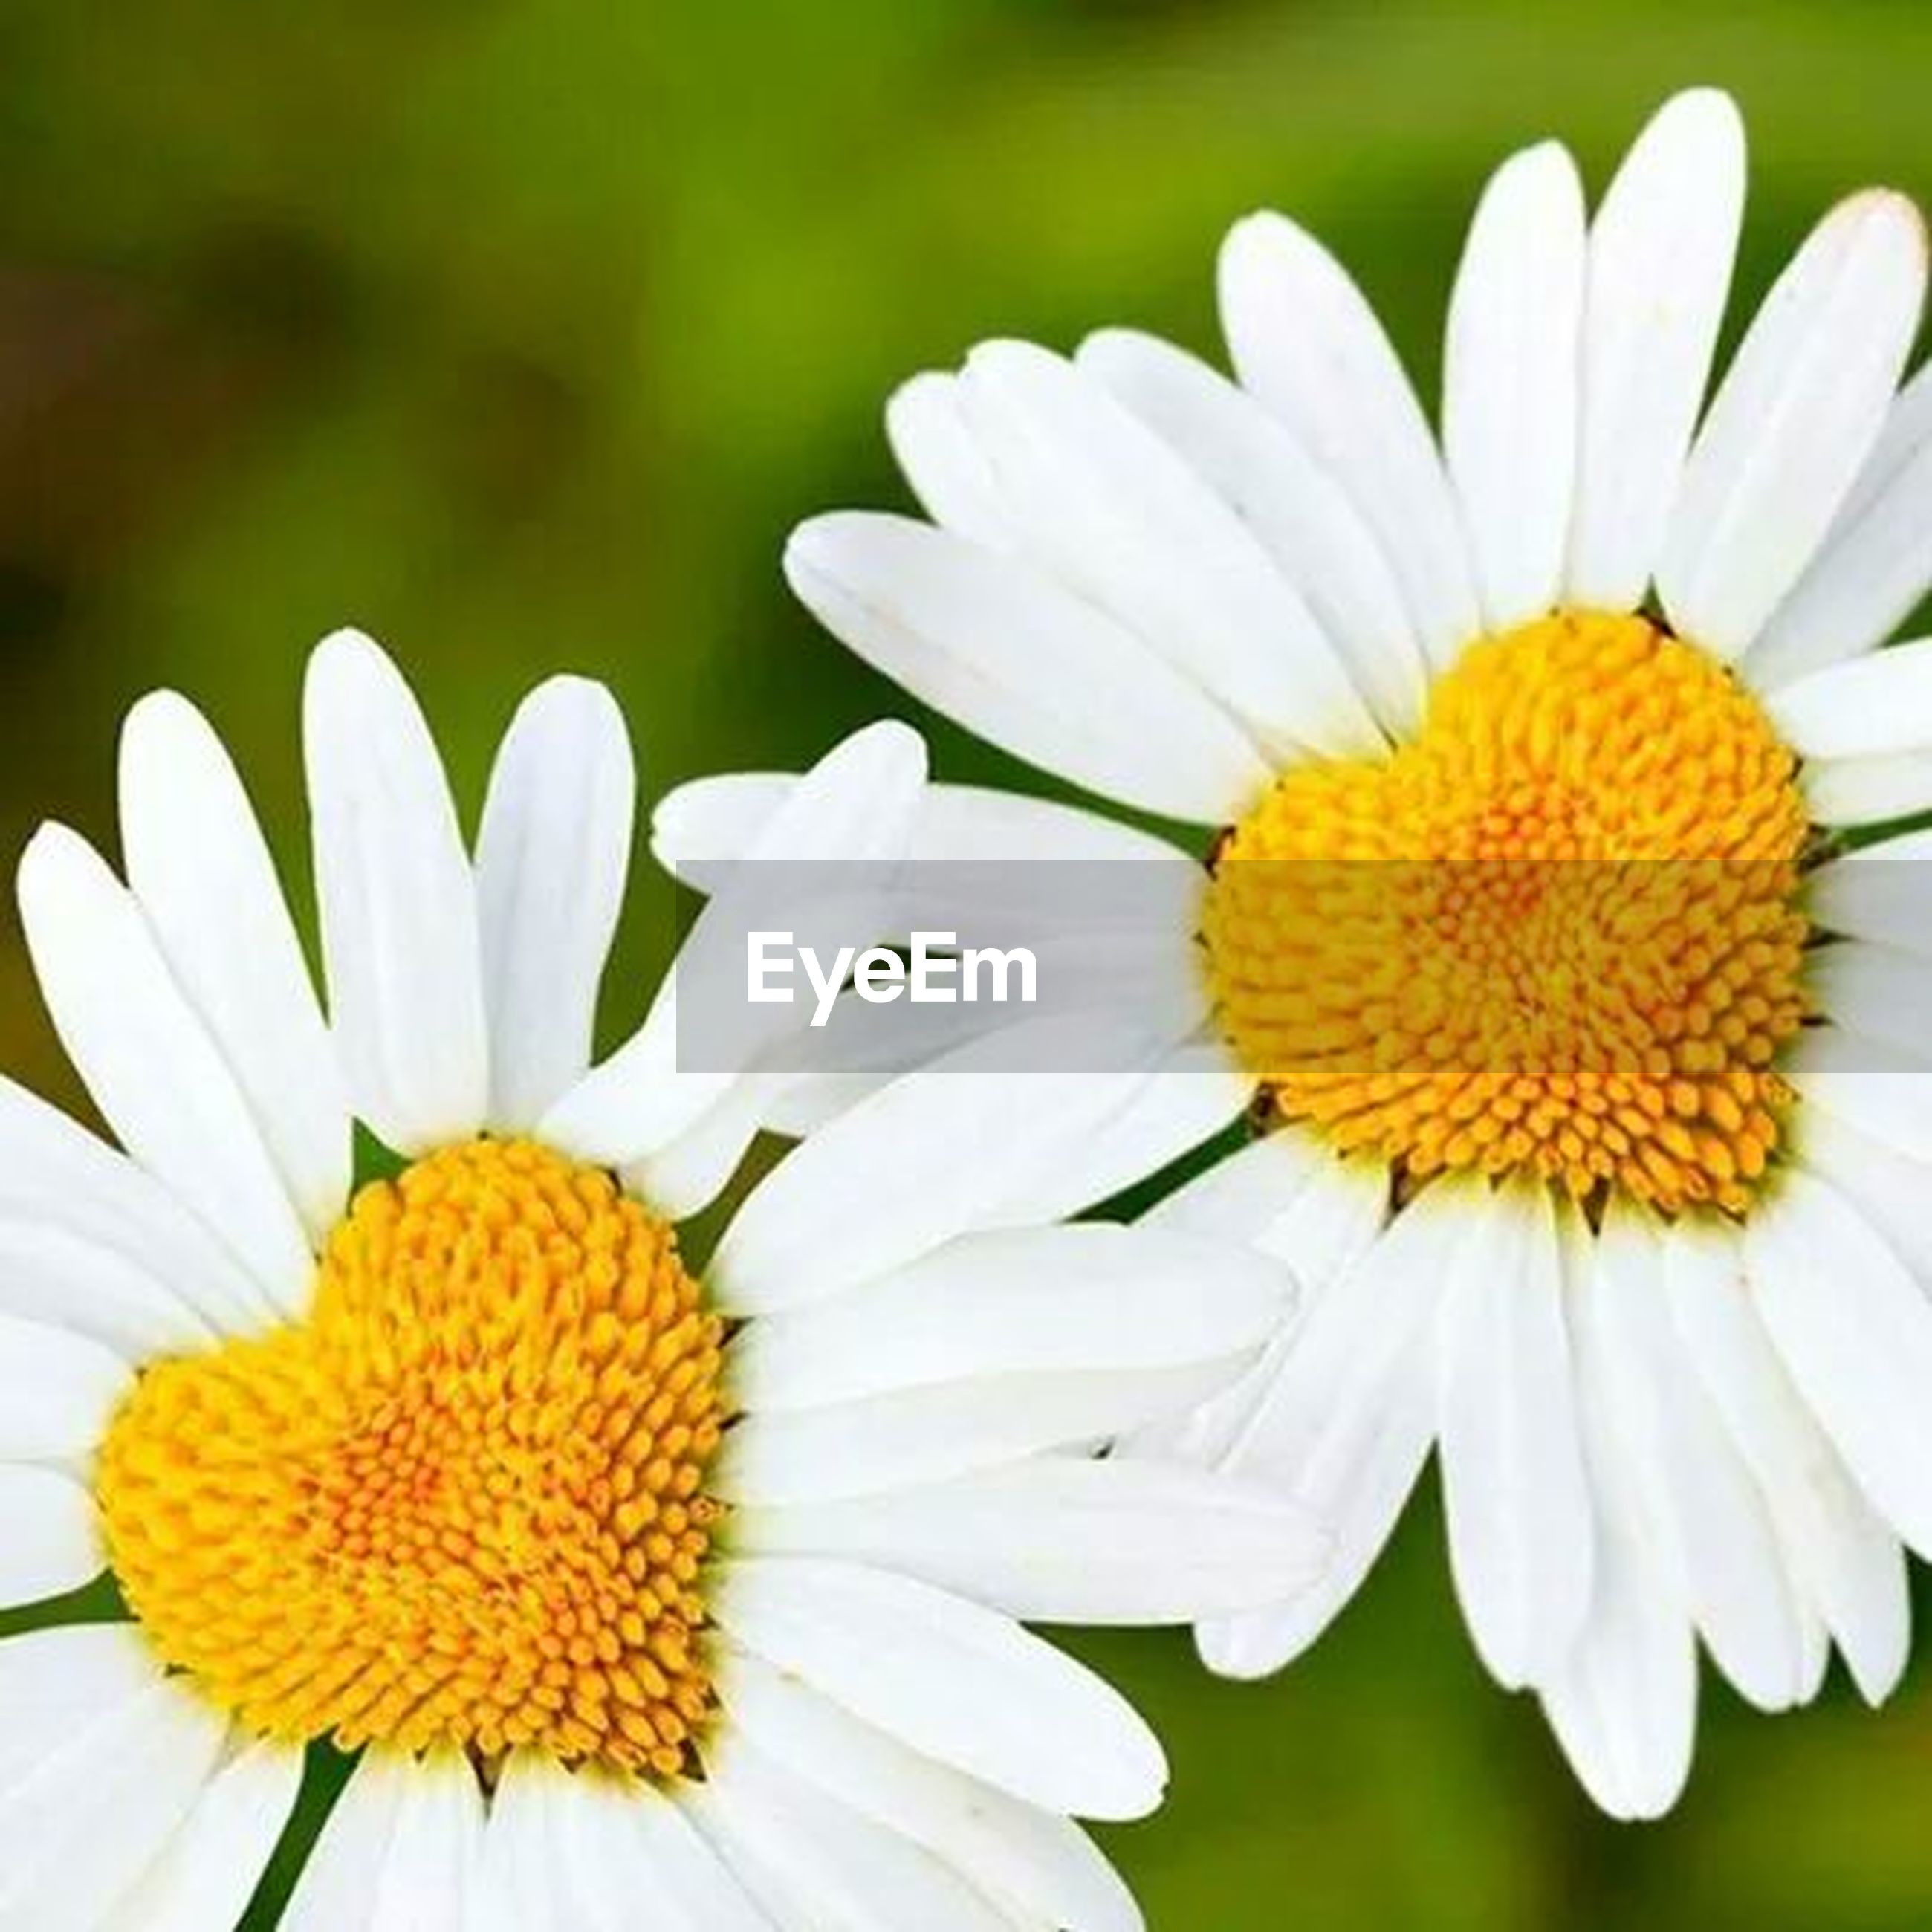 flower, freshness, petal, fragility, flower head, daisy, growth, white color, beauty in nature, yellow, pollen, close-up, nature, blooming, focus on foreground, plant, in bloom, selective focus, outdoors, blossom